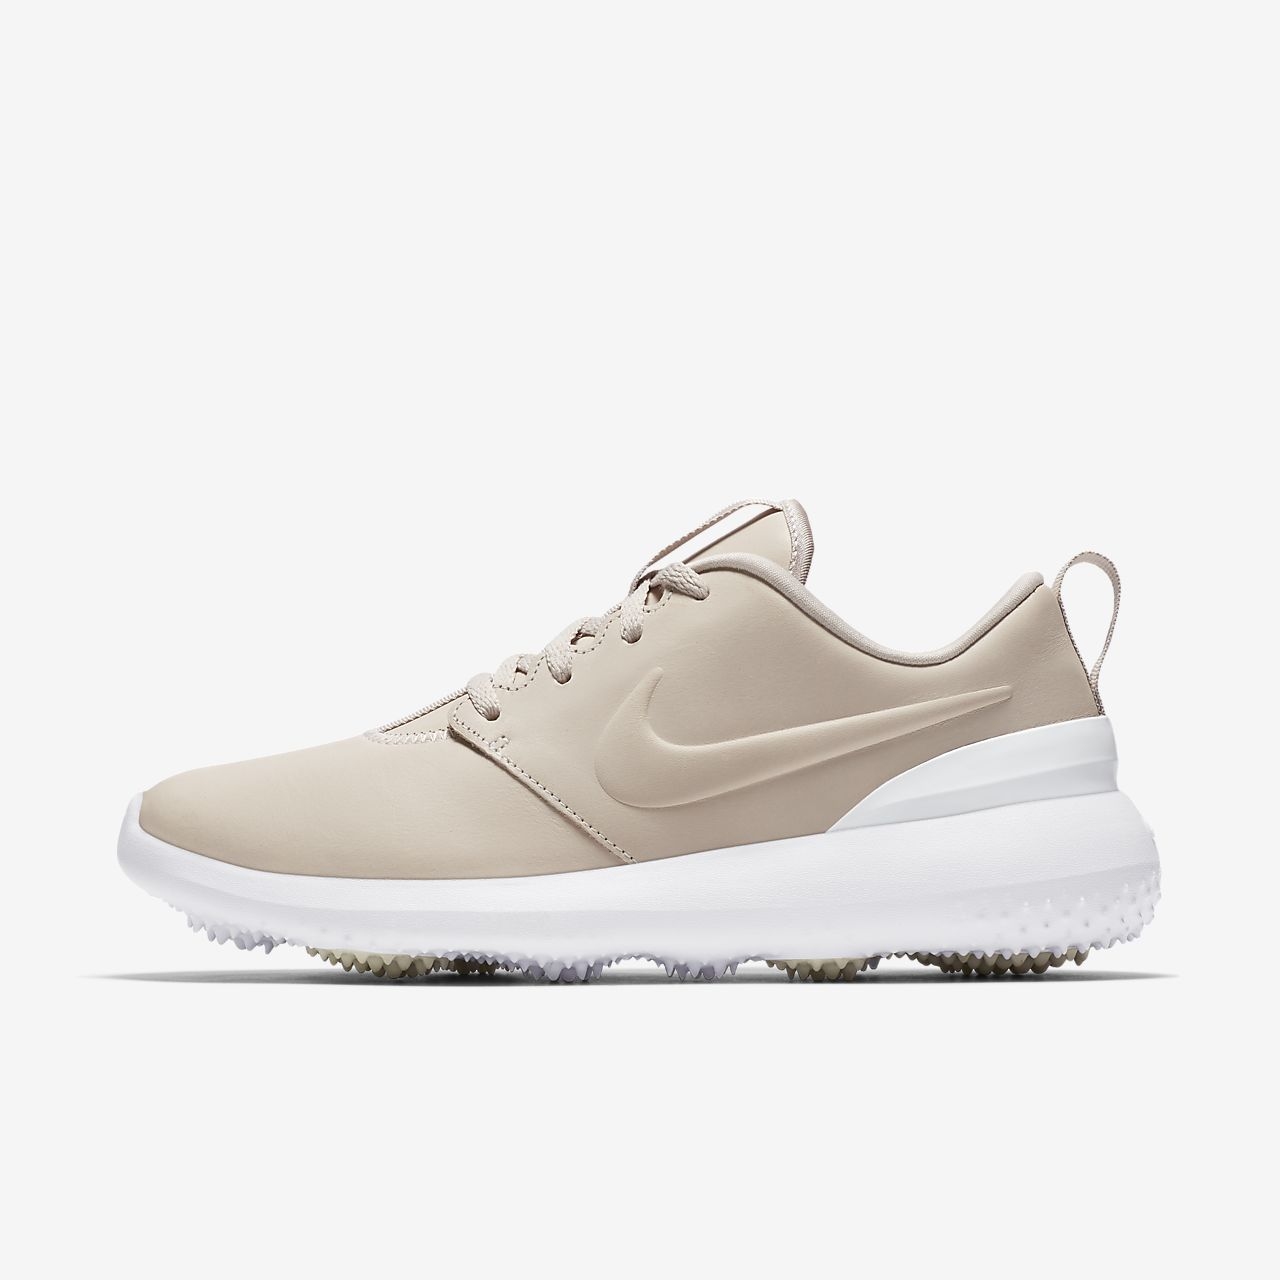 separation shoes 2f49d 6364b nike roshes women